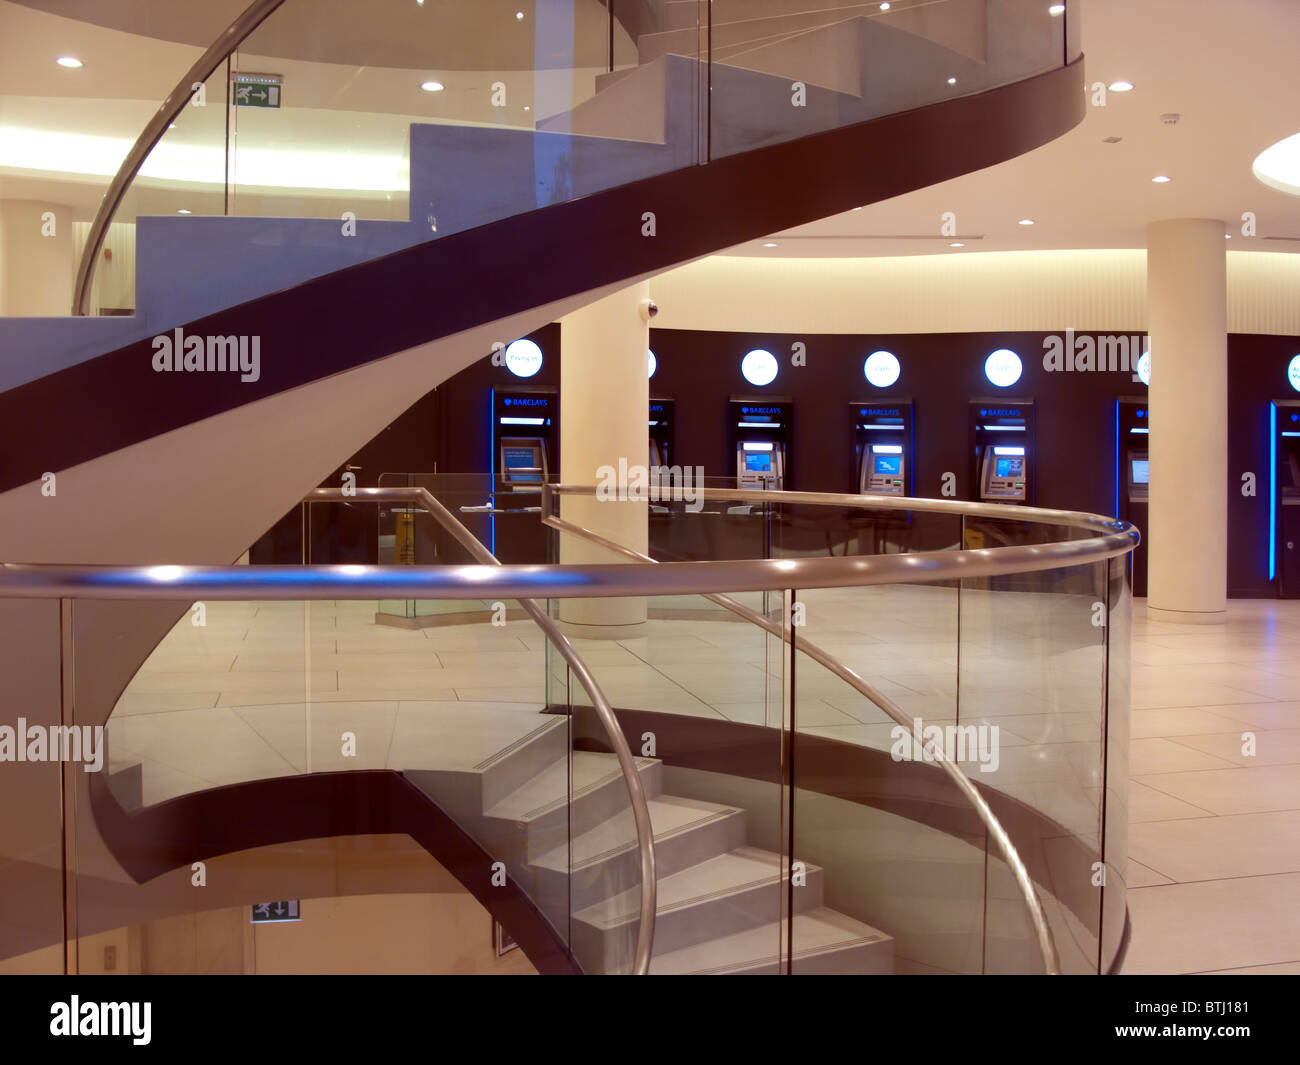 Modern bank interior stock photo  alamy